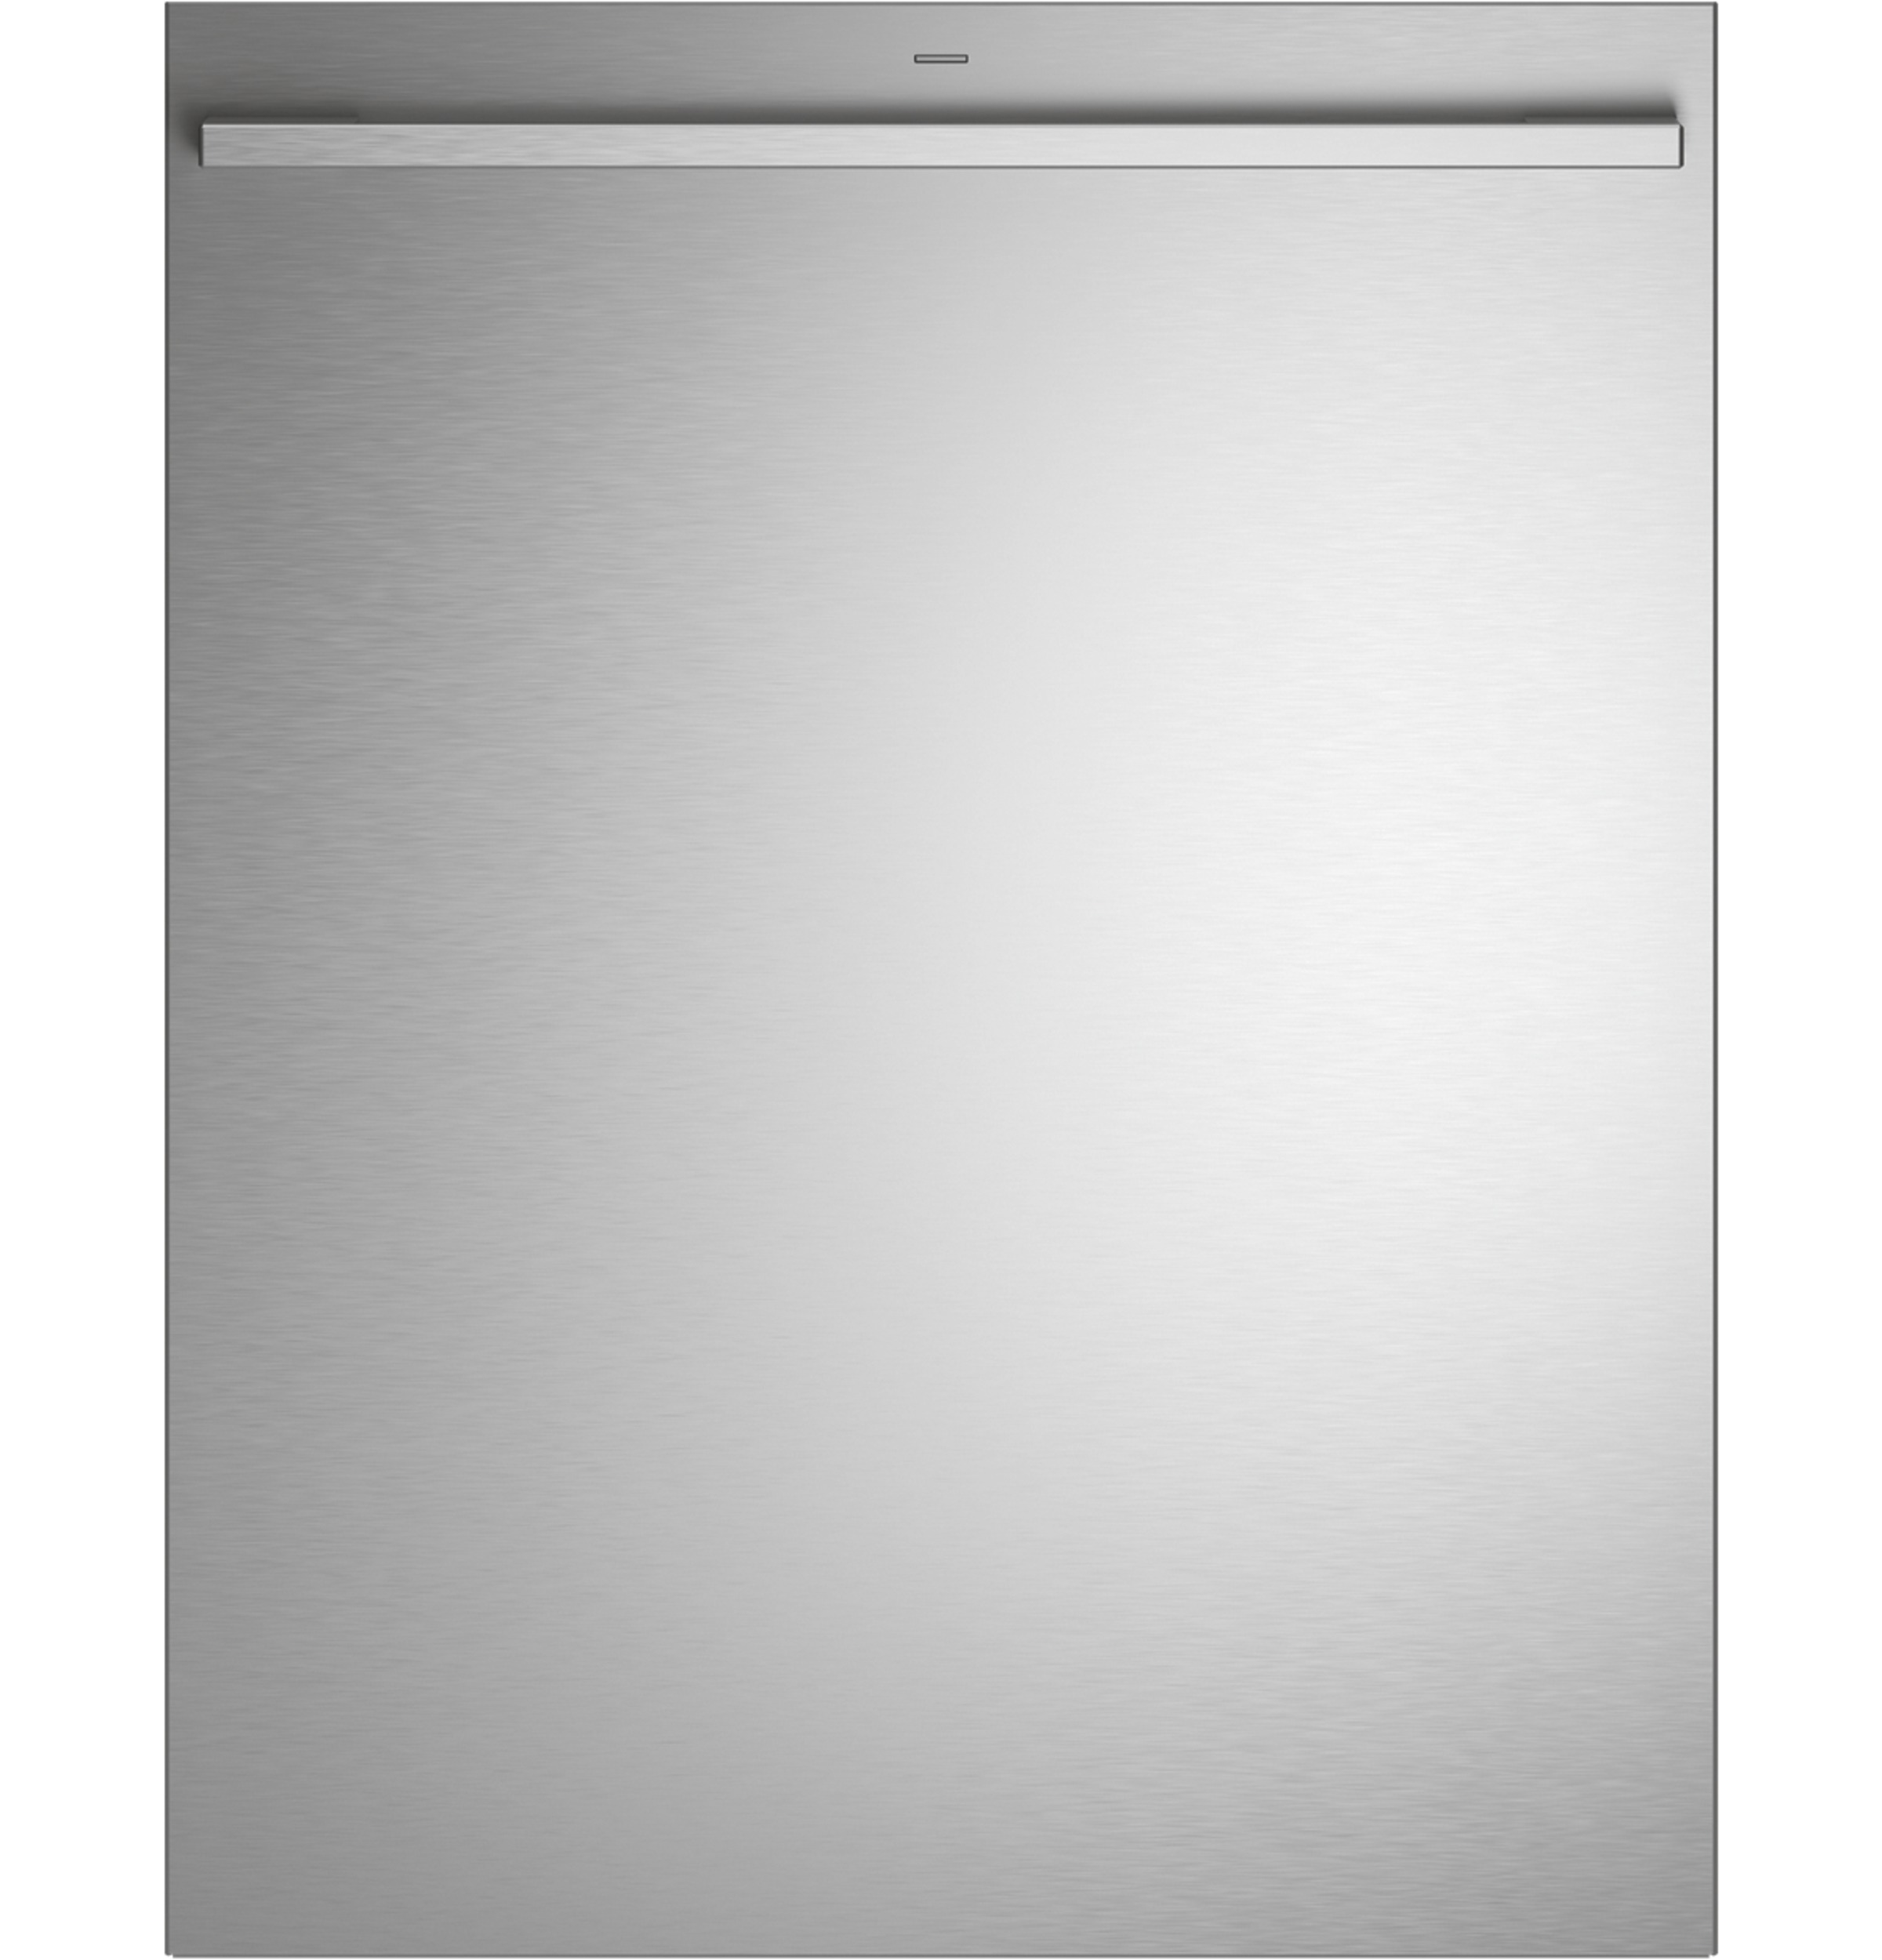 Monogram Dishwasher ZDT985SSNSS